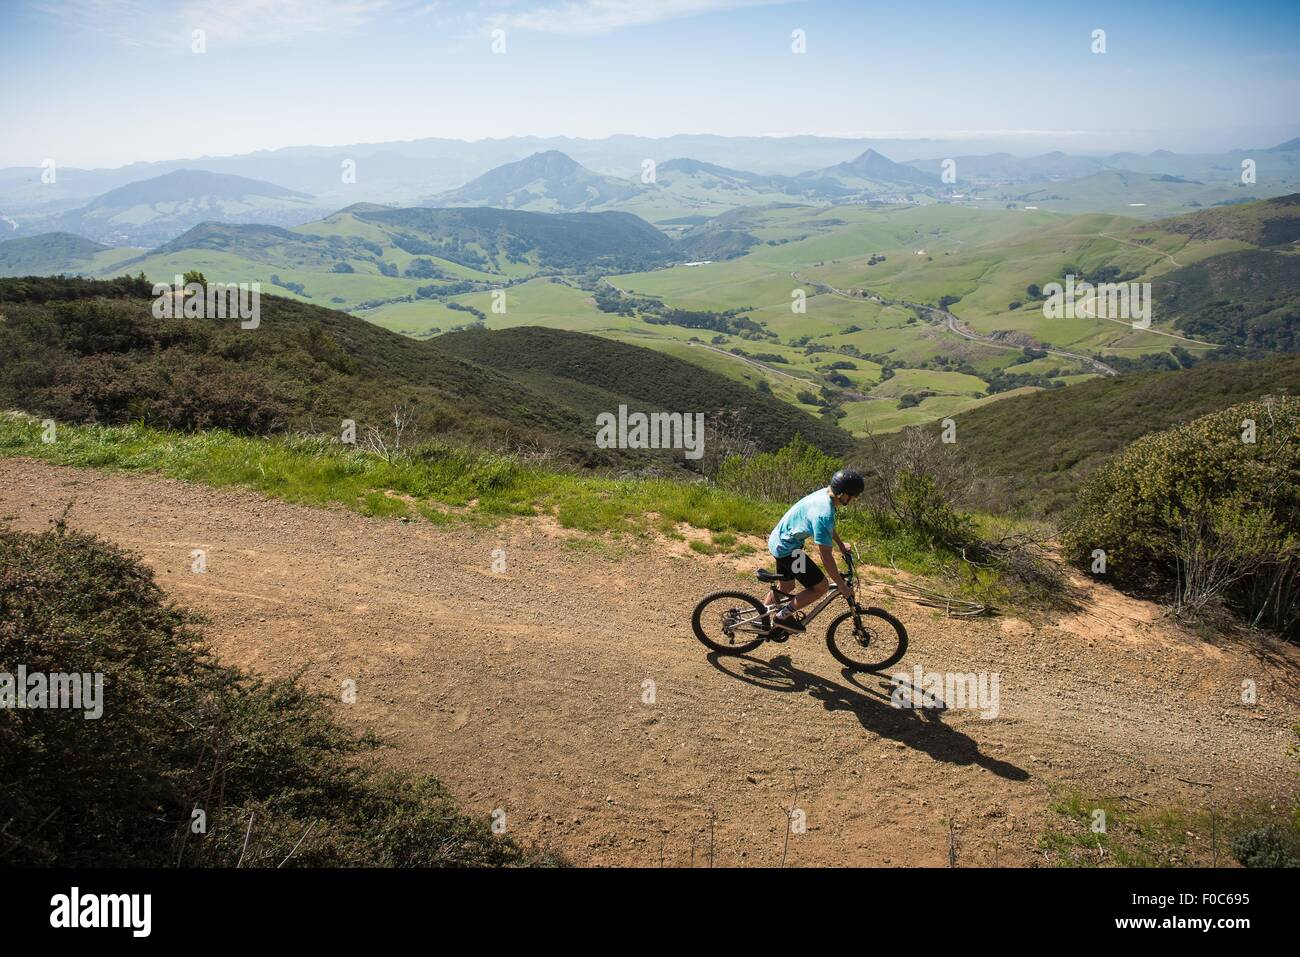 Cyclist mountain biking, San Luis Obispo, California, United States of America - Stock Image